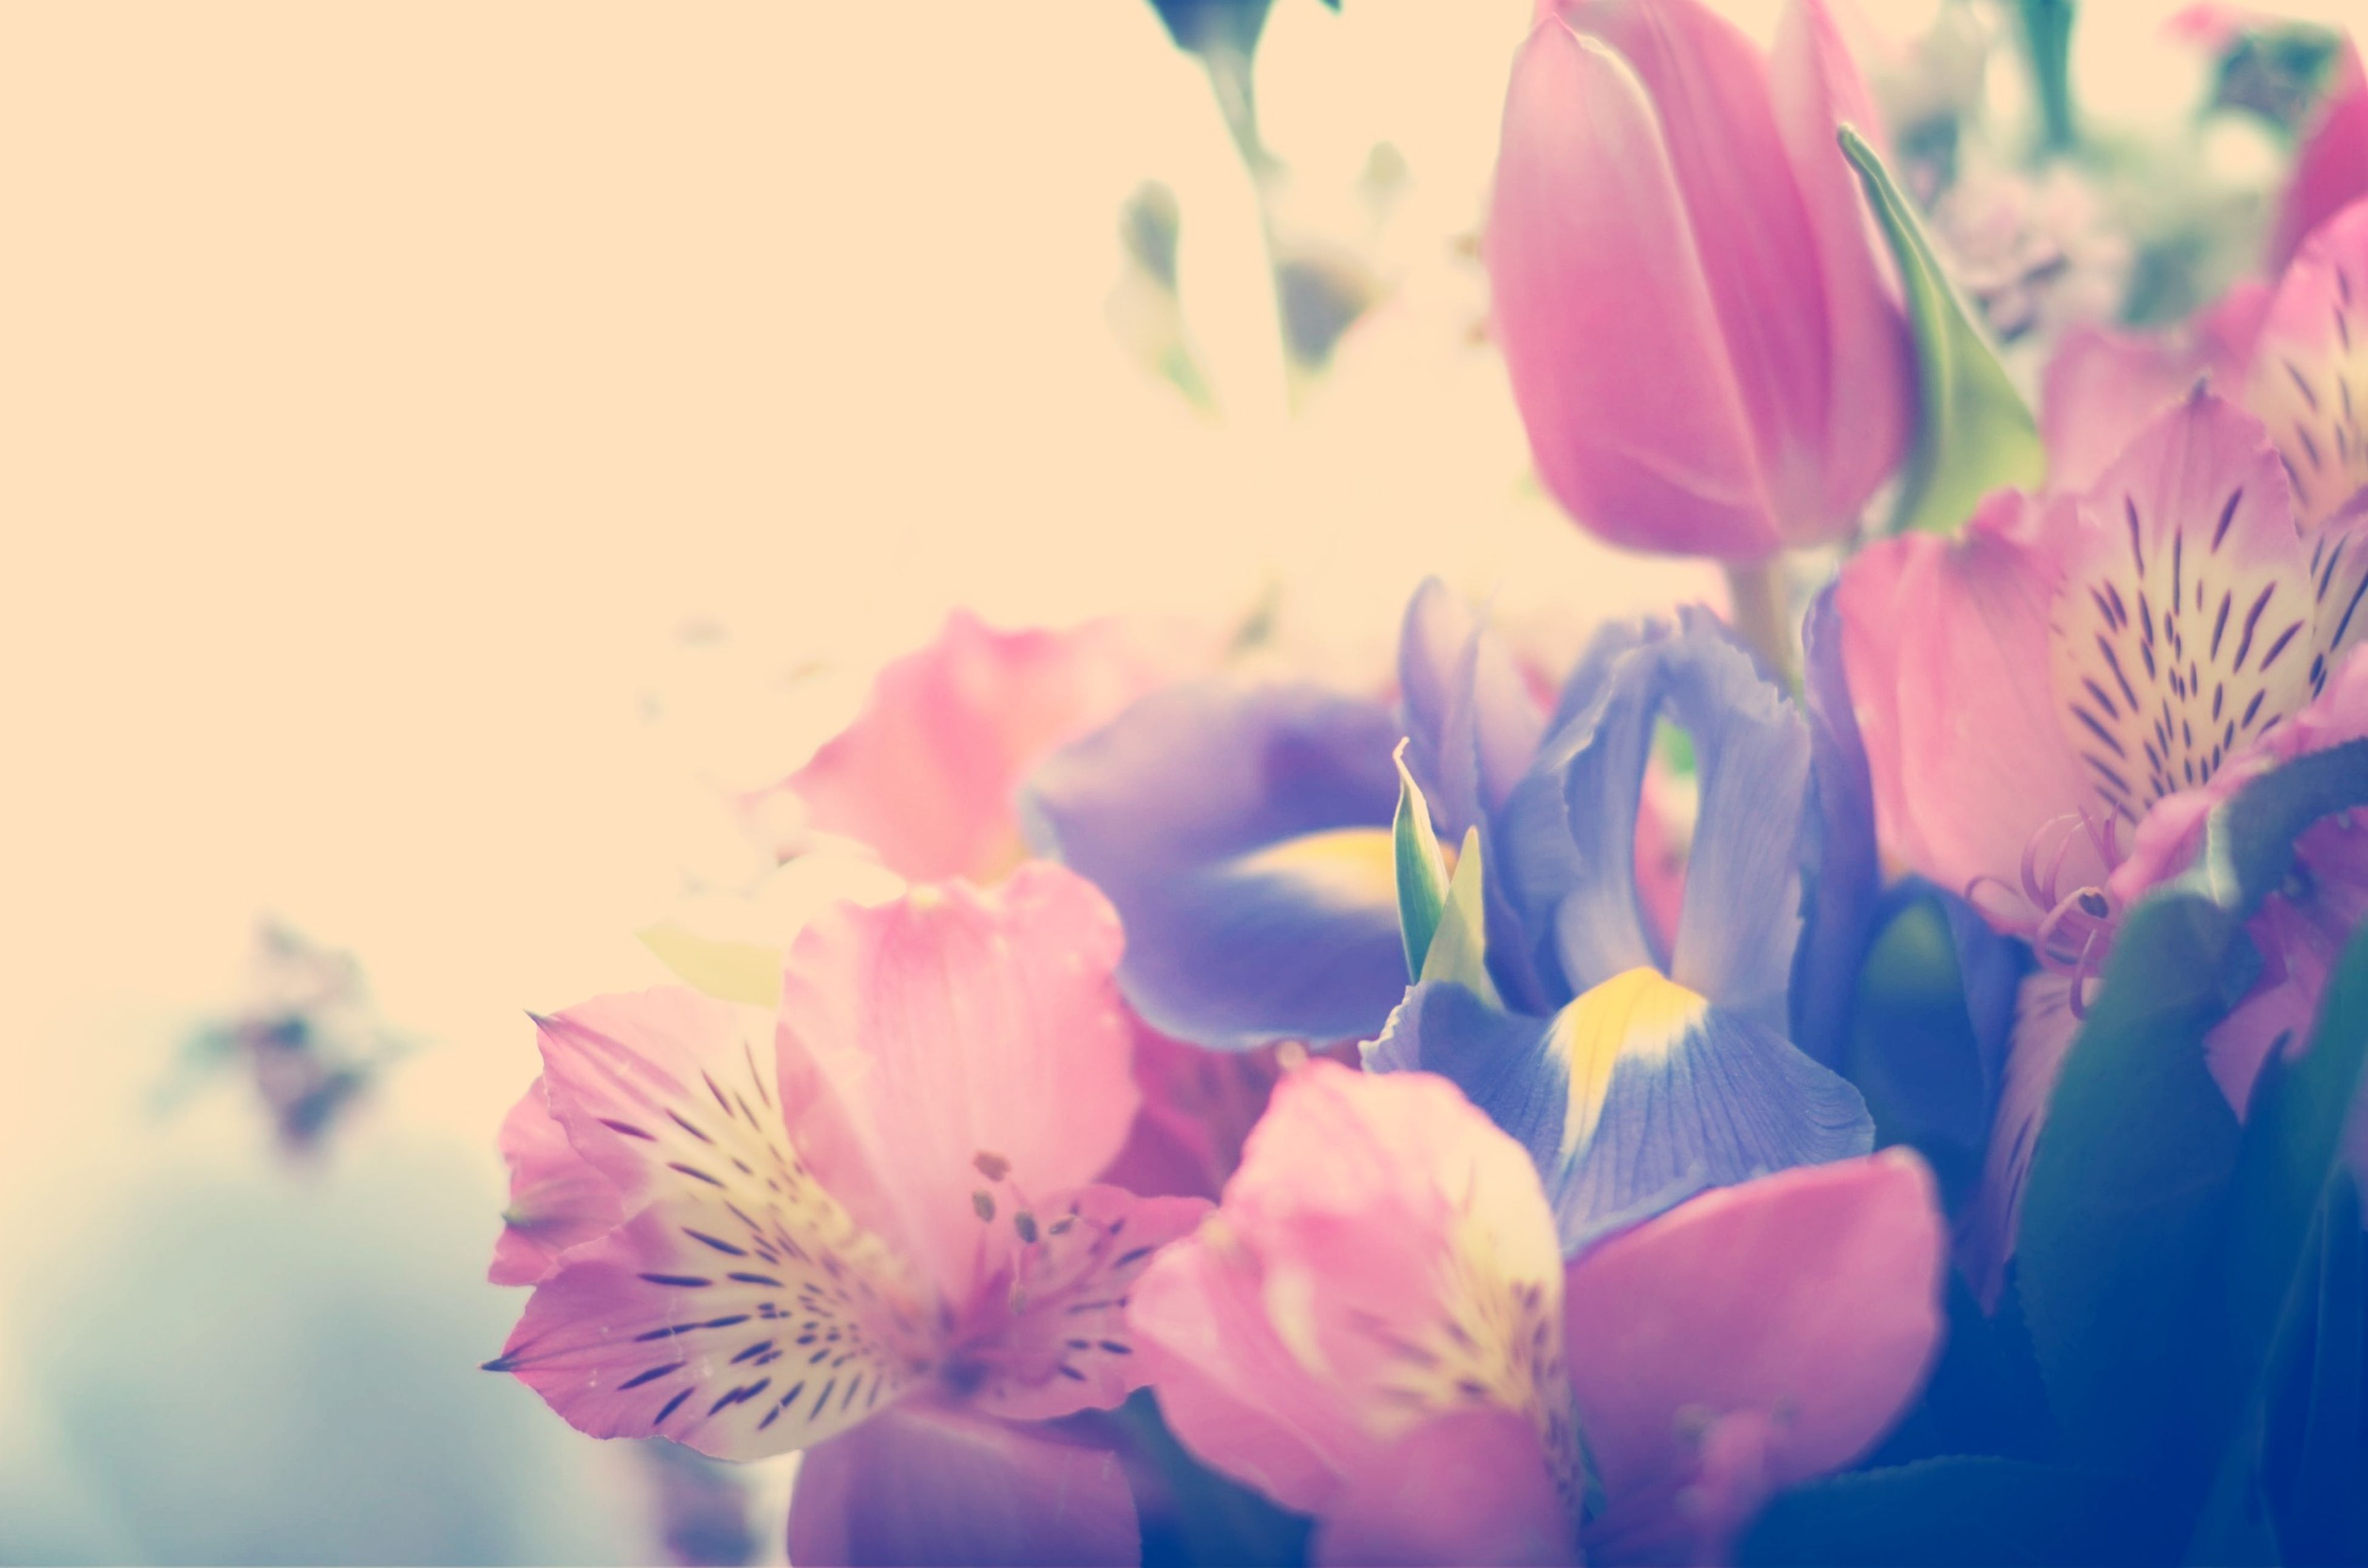 flower, petal, freshness, fragility, flower head, growth, beauty in nature, pink color, close-up, blooming, nature, plant, focus on foreground, in bloom, blossom, outdoors, day, selective focus, pink, park - man made space